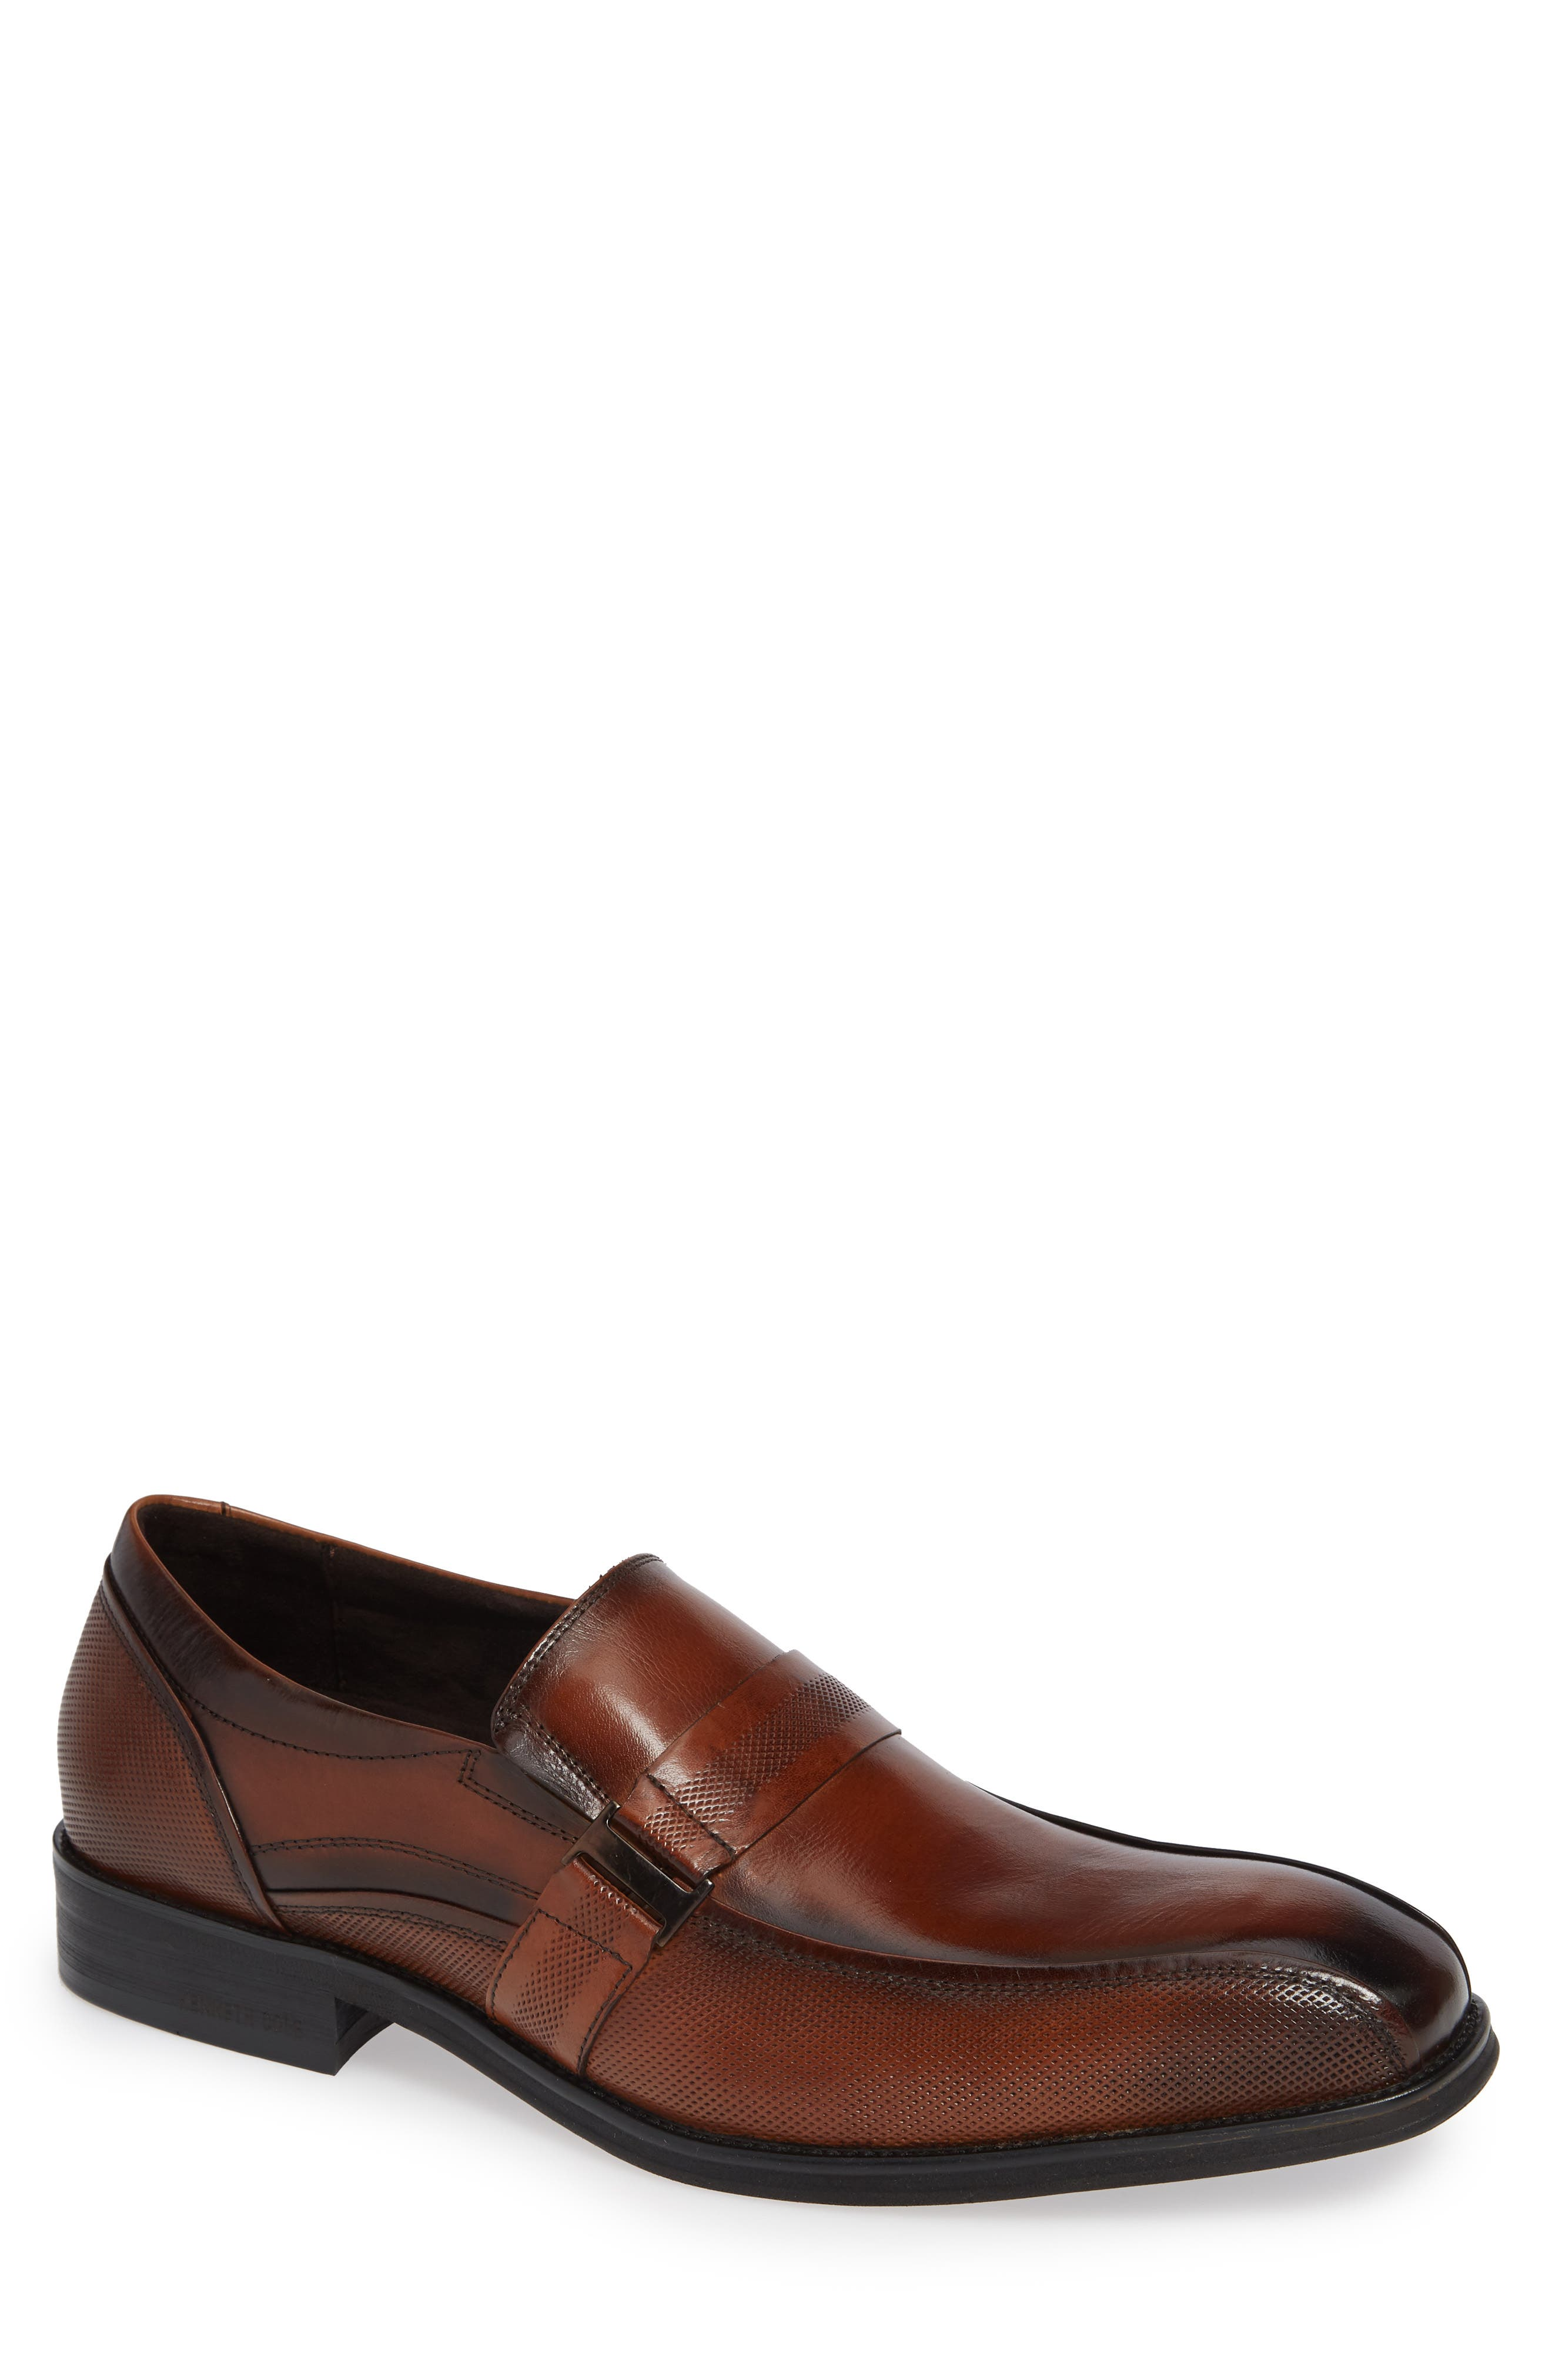 Kenneth Cole New York Tyrie Venetian Loafer- Brown